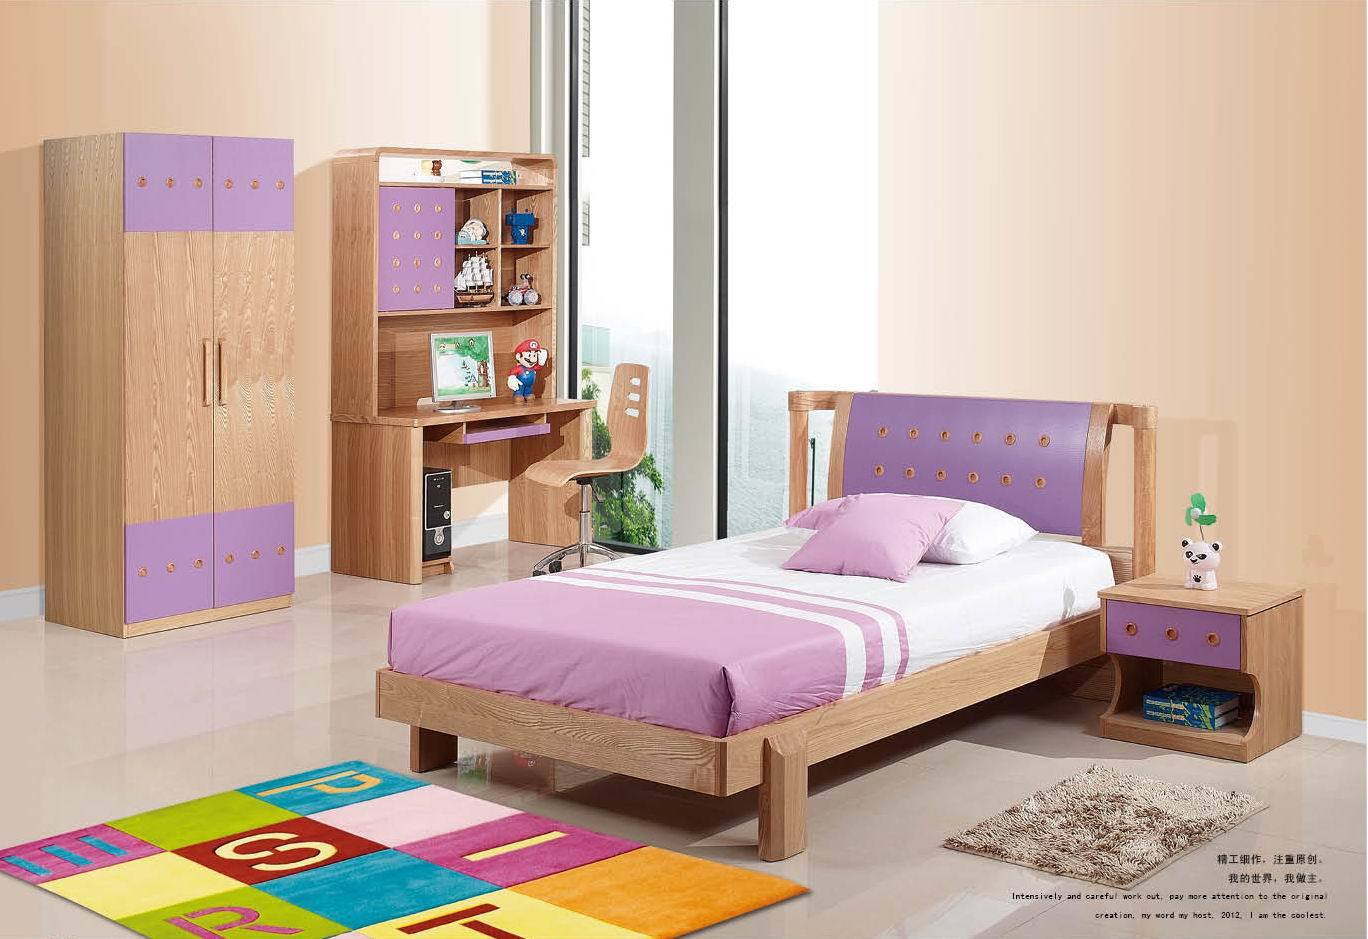 China Kids Bedroom Set Jkd 20130 China Kids Bedroom